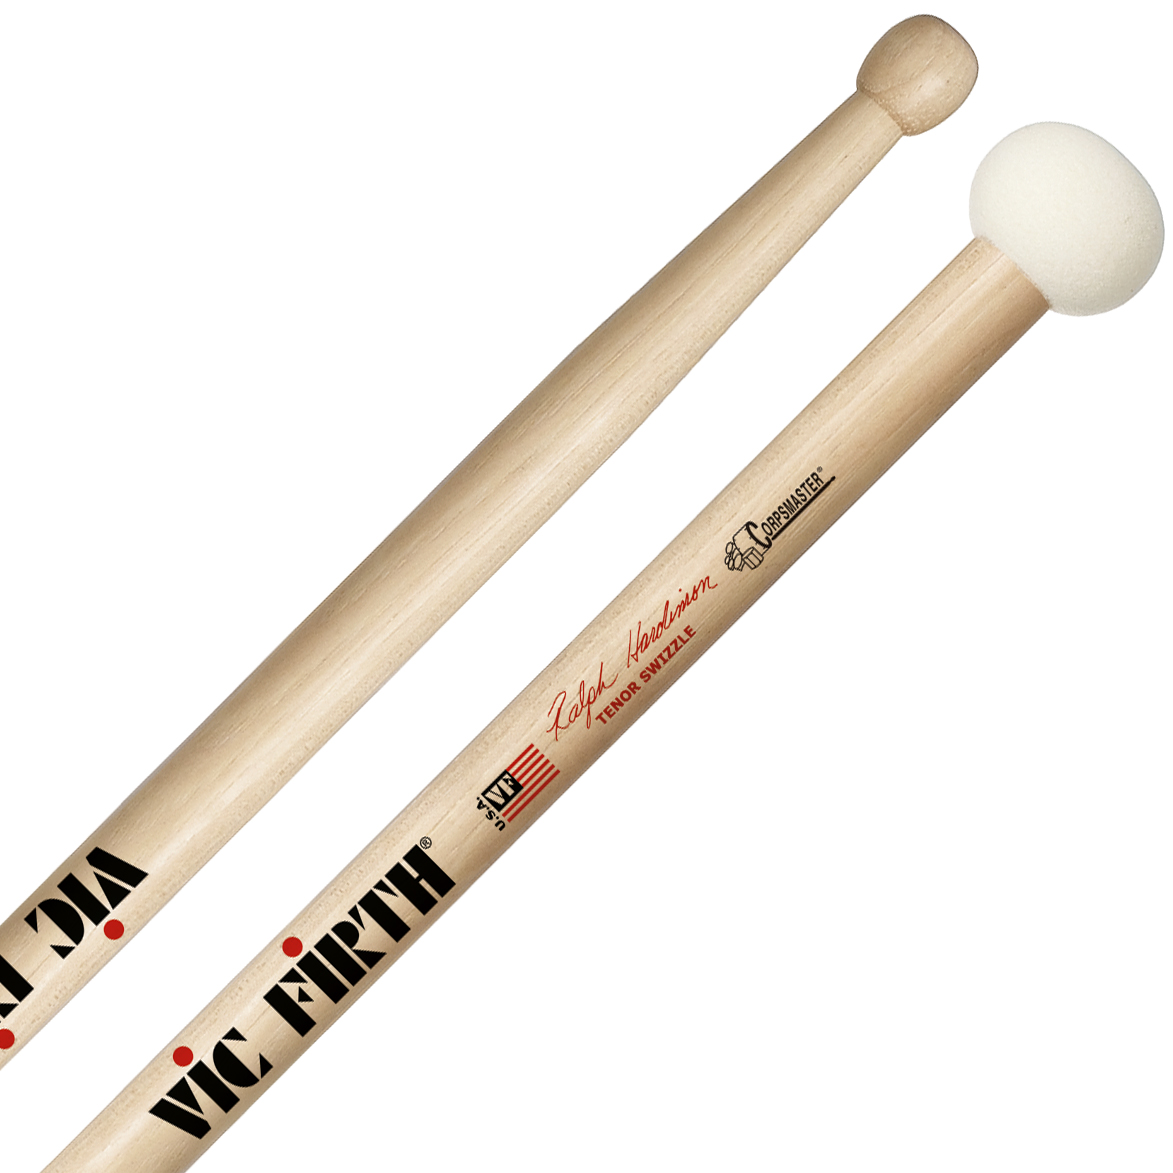 Vic Firth SRHTSW Ralph Hardimon Corpsmaster Signature Marching Tenor Swizzle Sticks